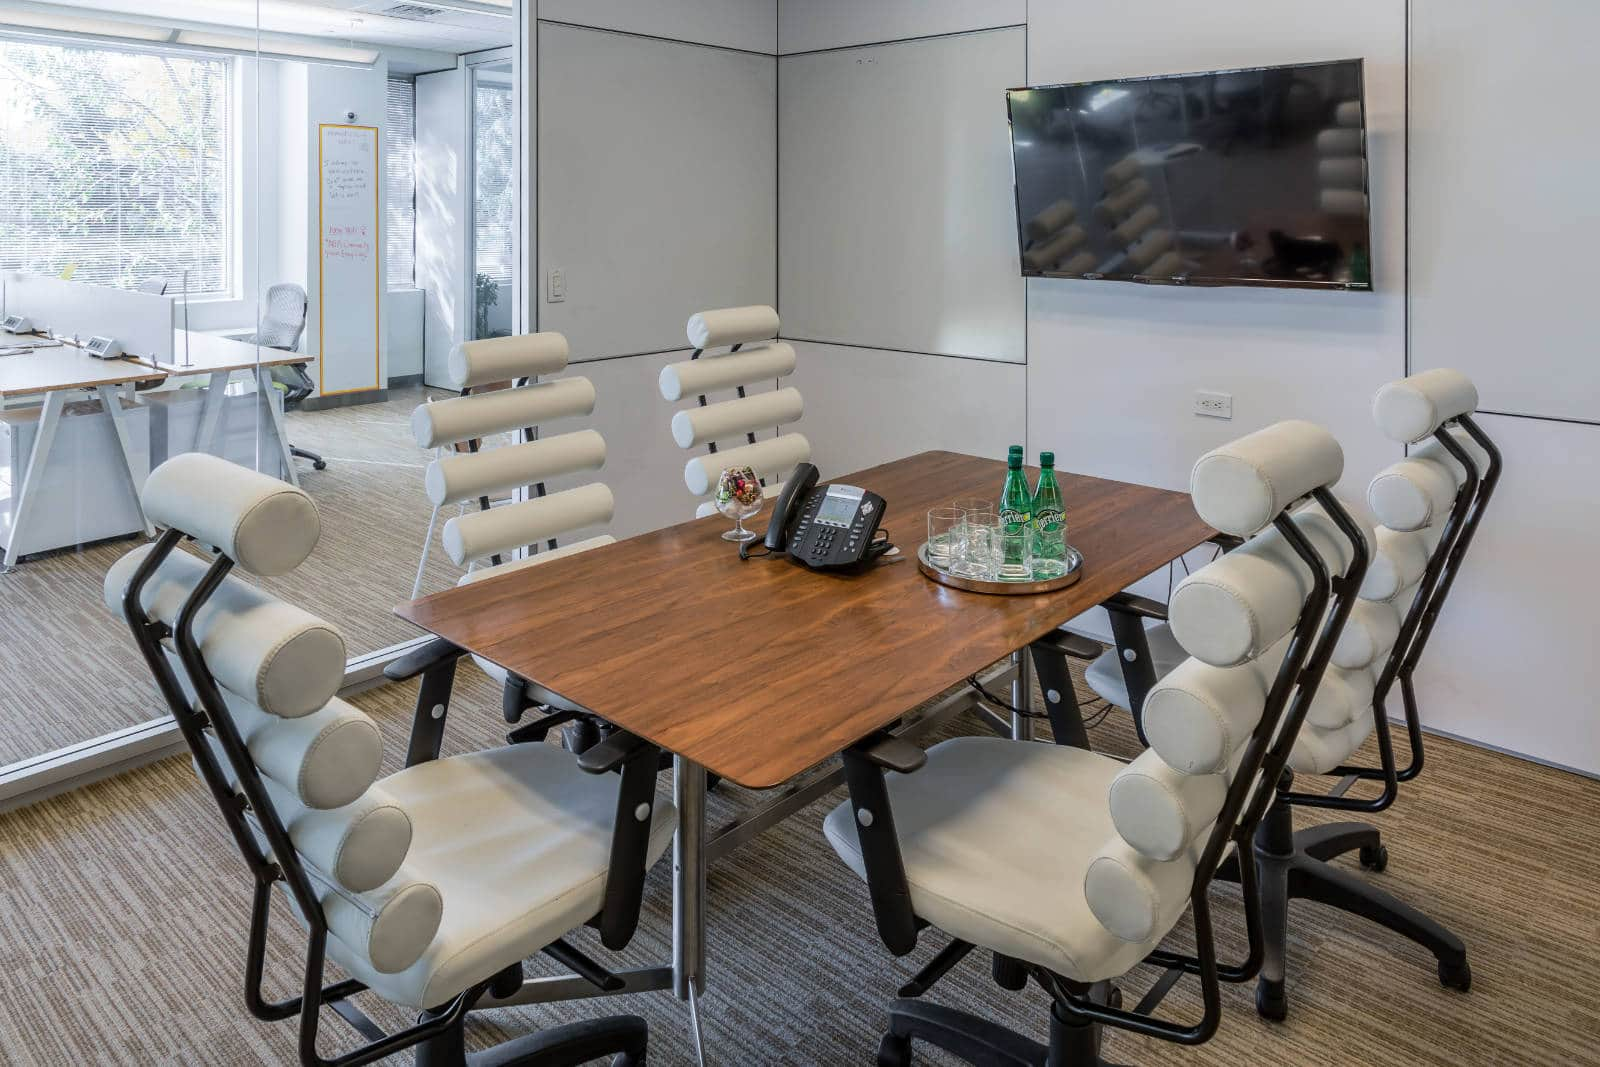 Interior shot of a meeting room with large, modern white chairs, and a beautiful, modern table and flat screen TV